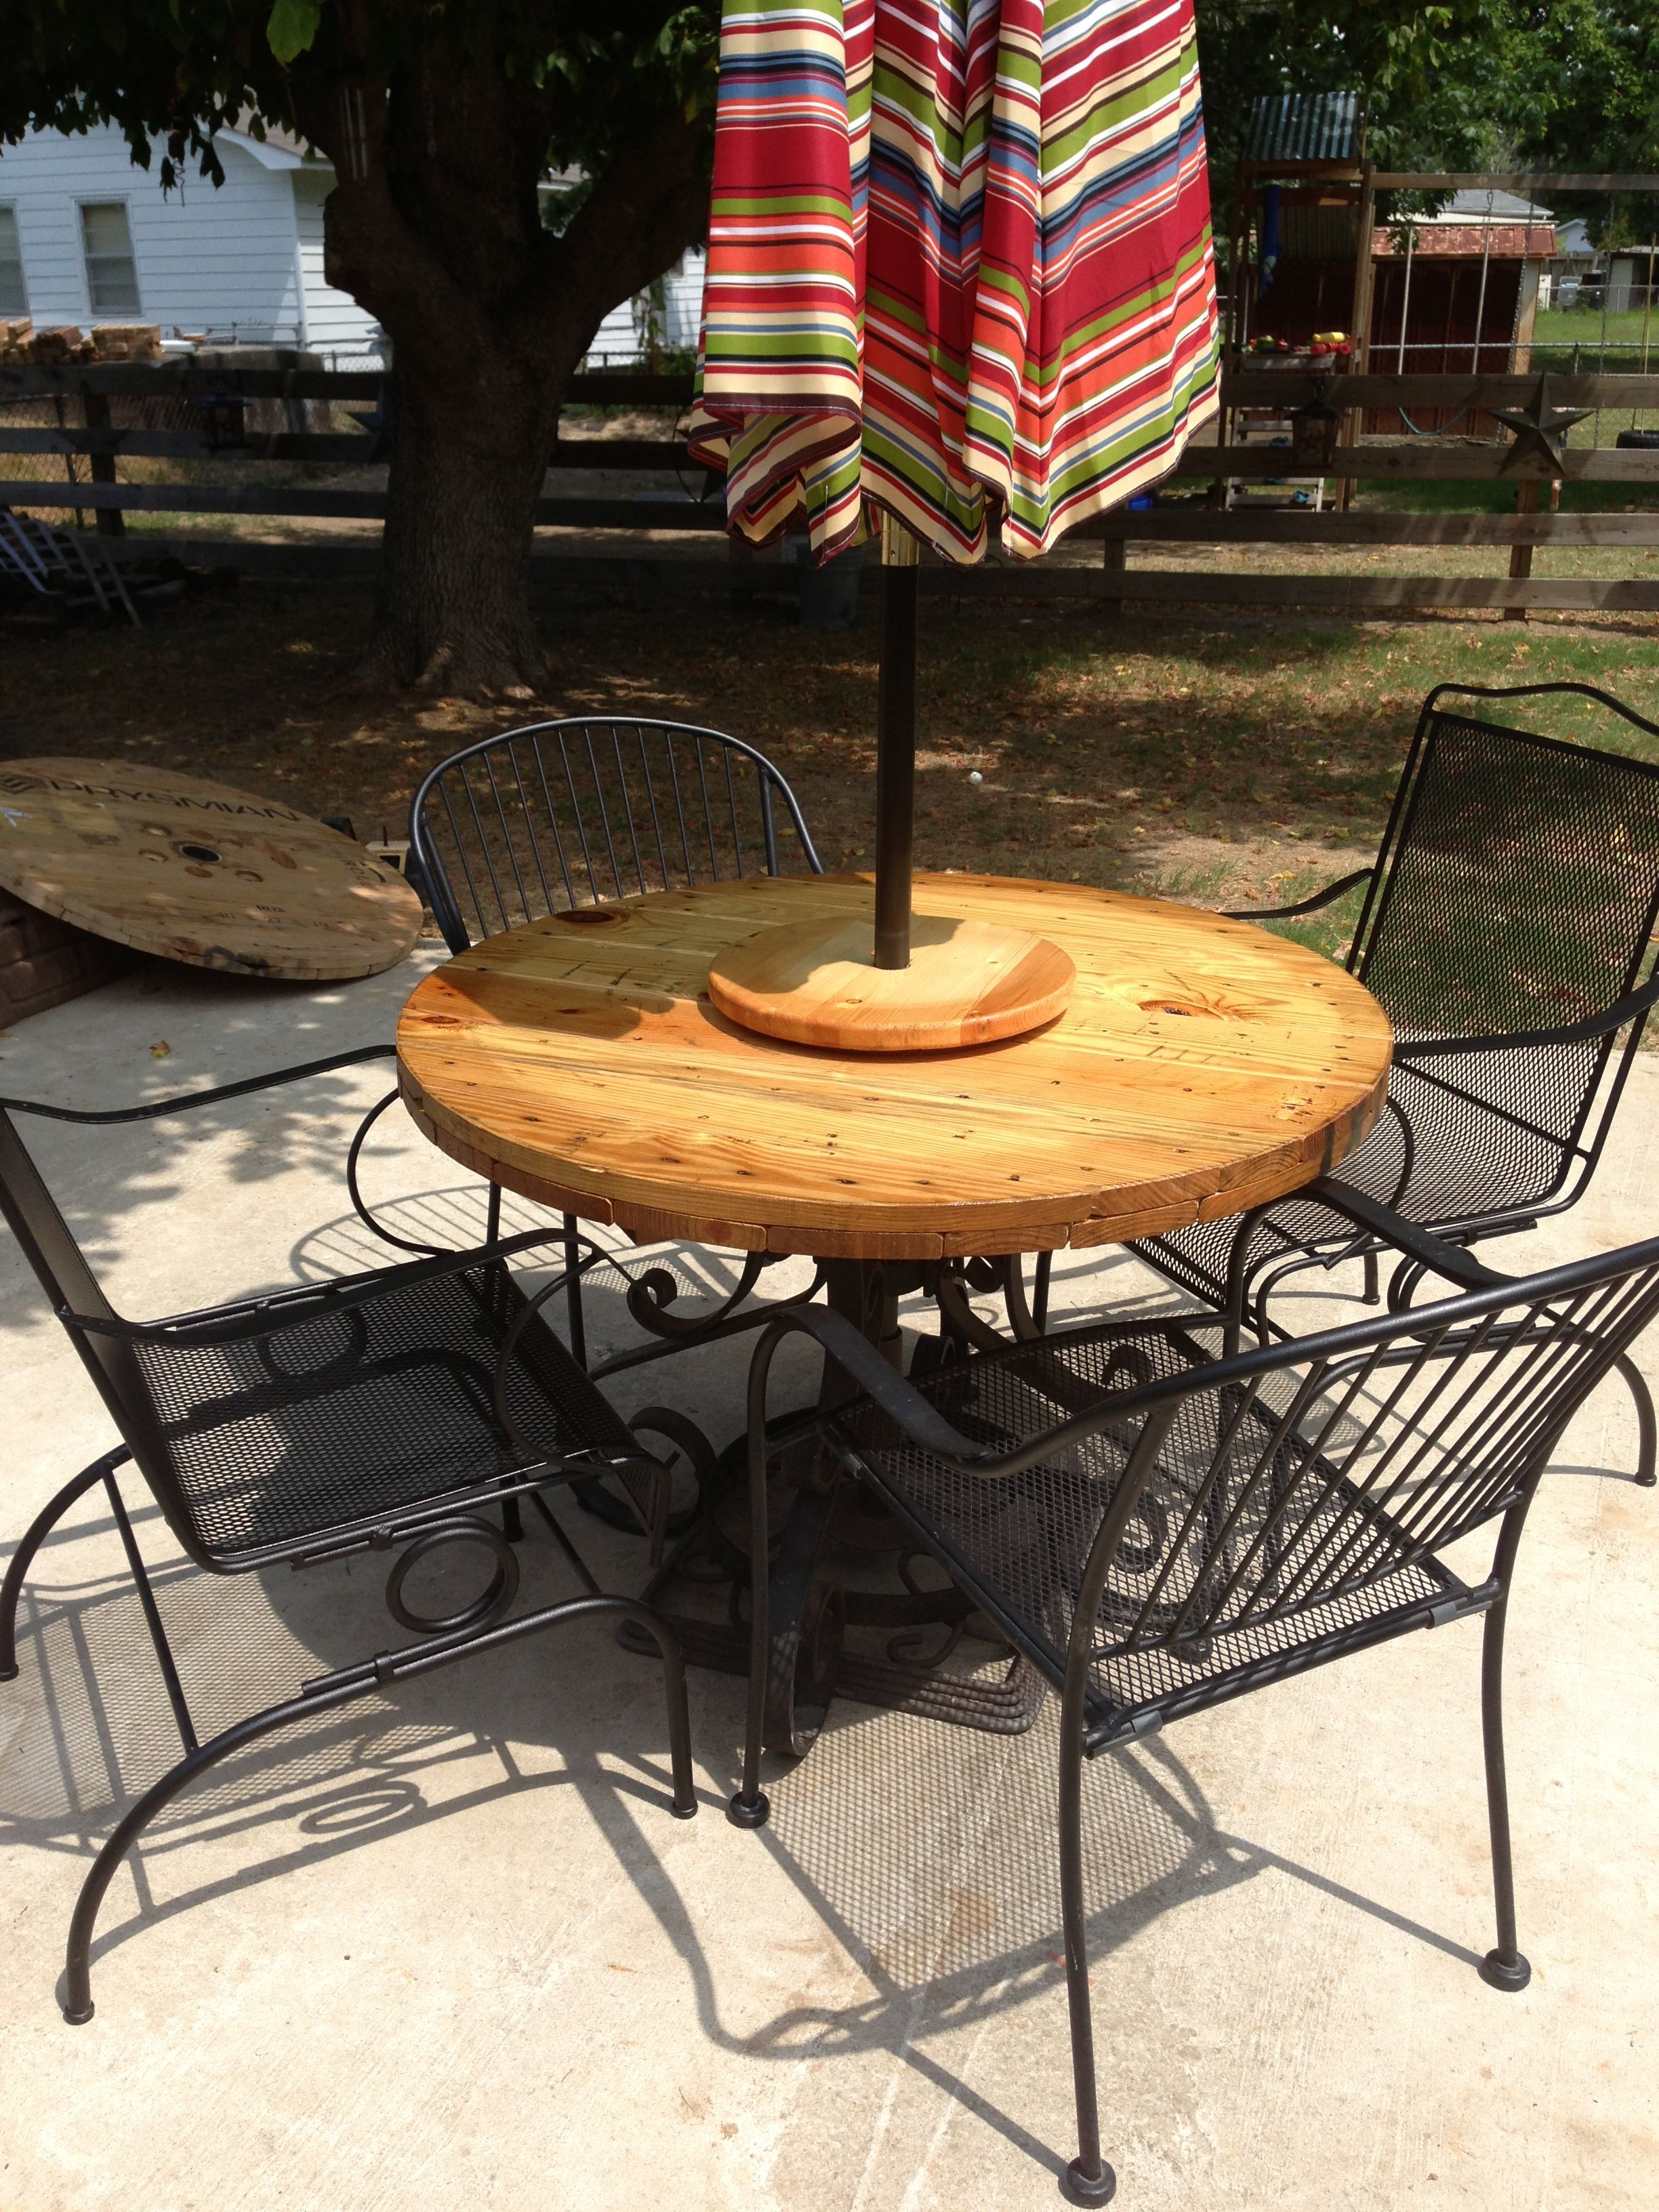 Old Wrought Iron Table Base End Of Wire Spool Another Lazy Susan With A Hole In The Middle For Umbrella